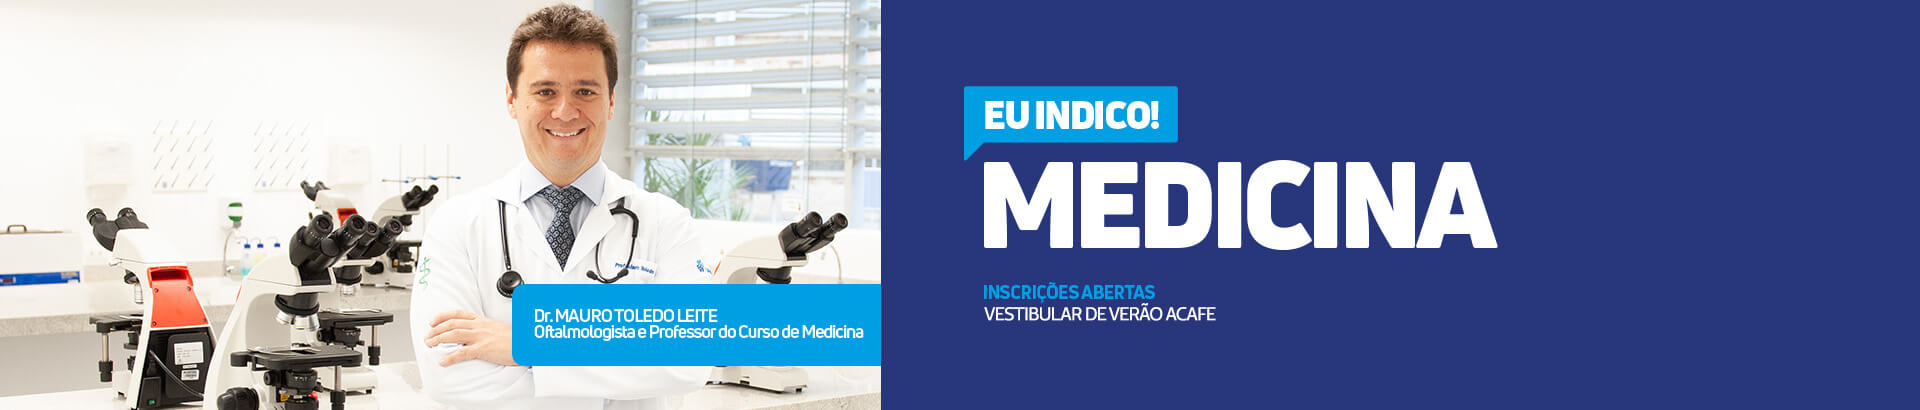 Ref1-Unifebe-Graduação-Medicina-Set-Out-Dr-Mauro-Banner-Site-Desktop